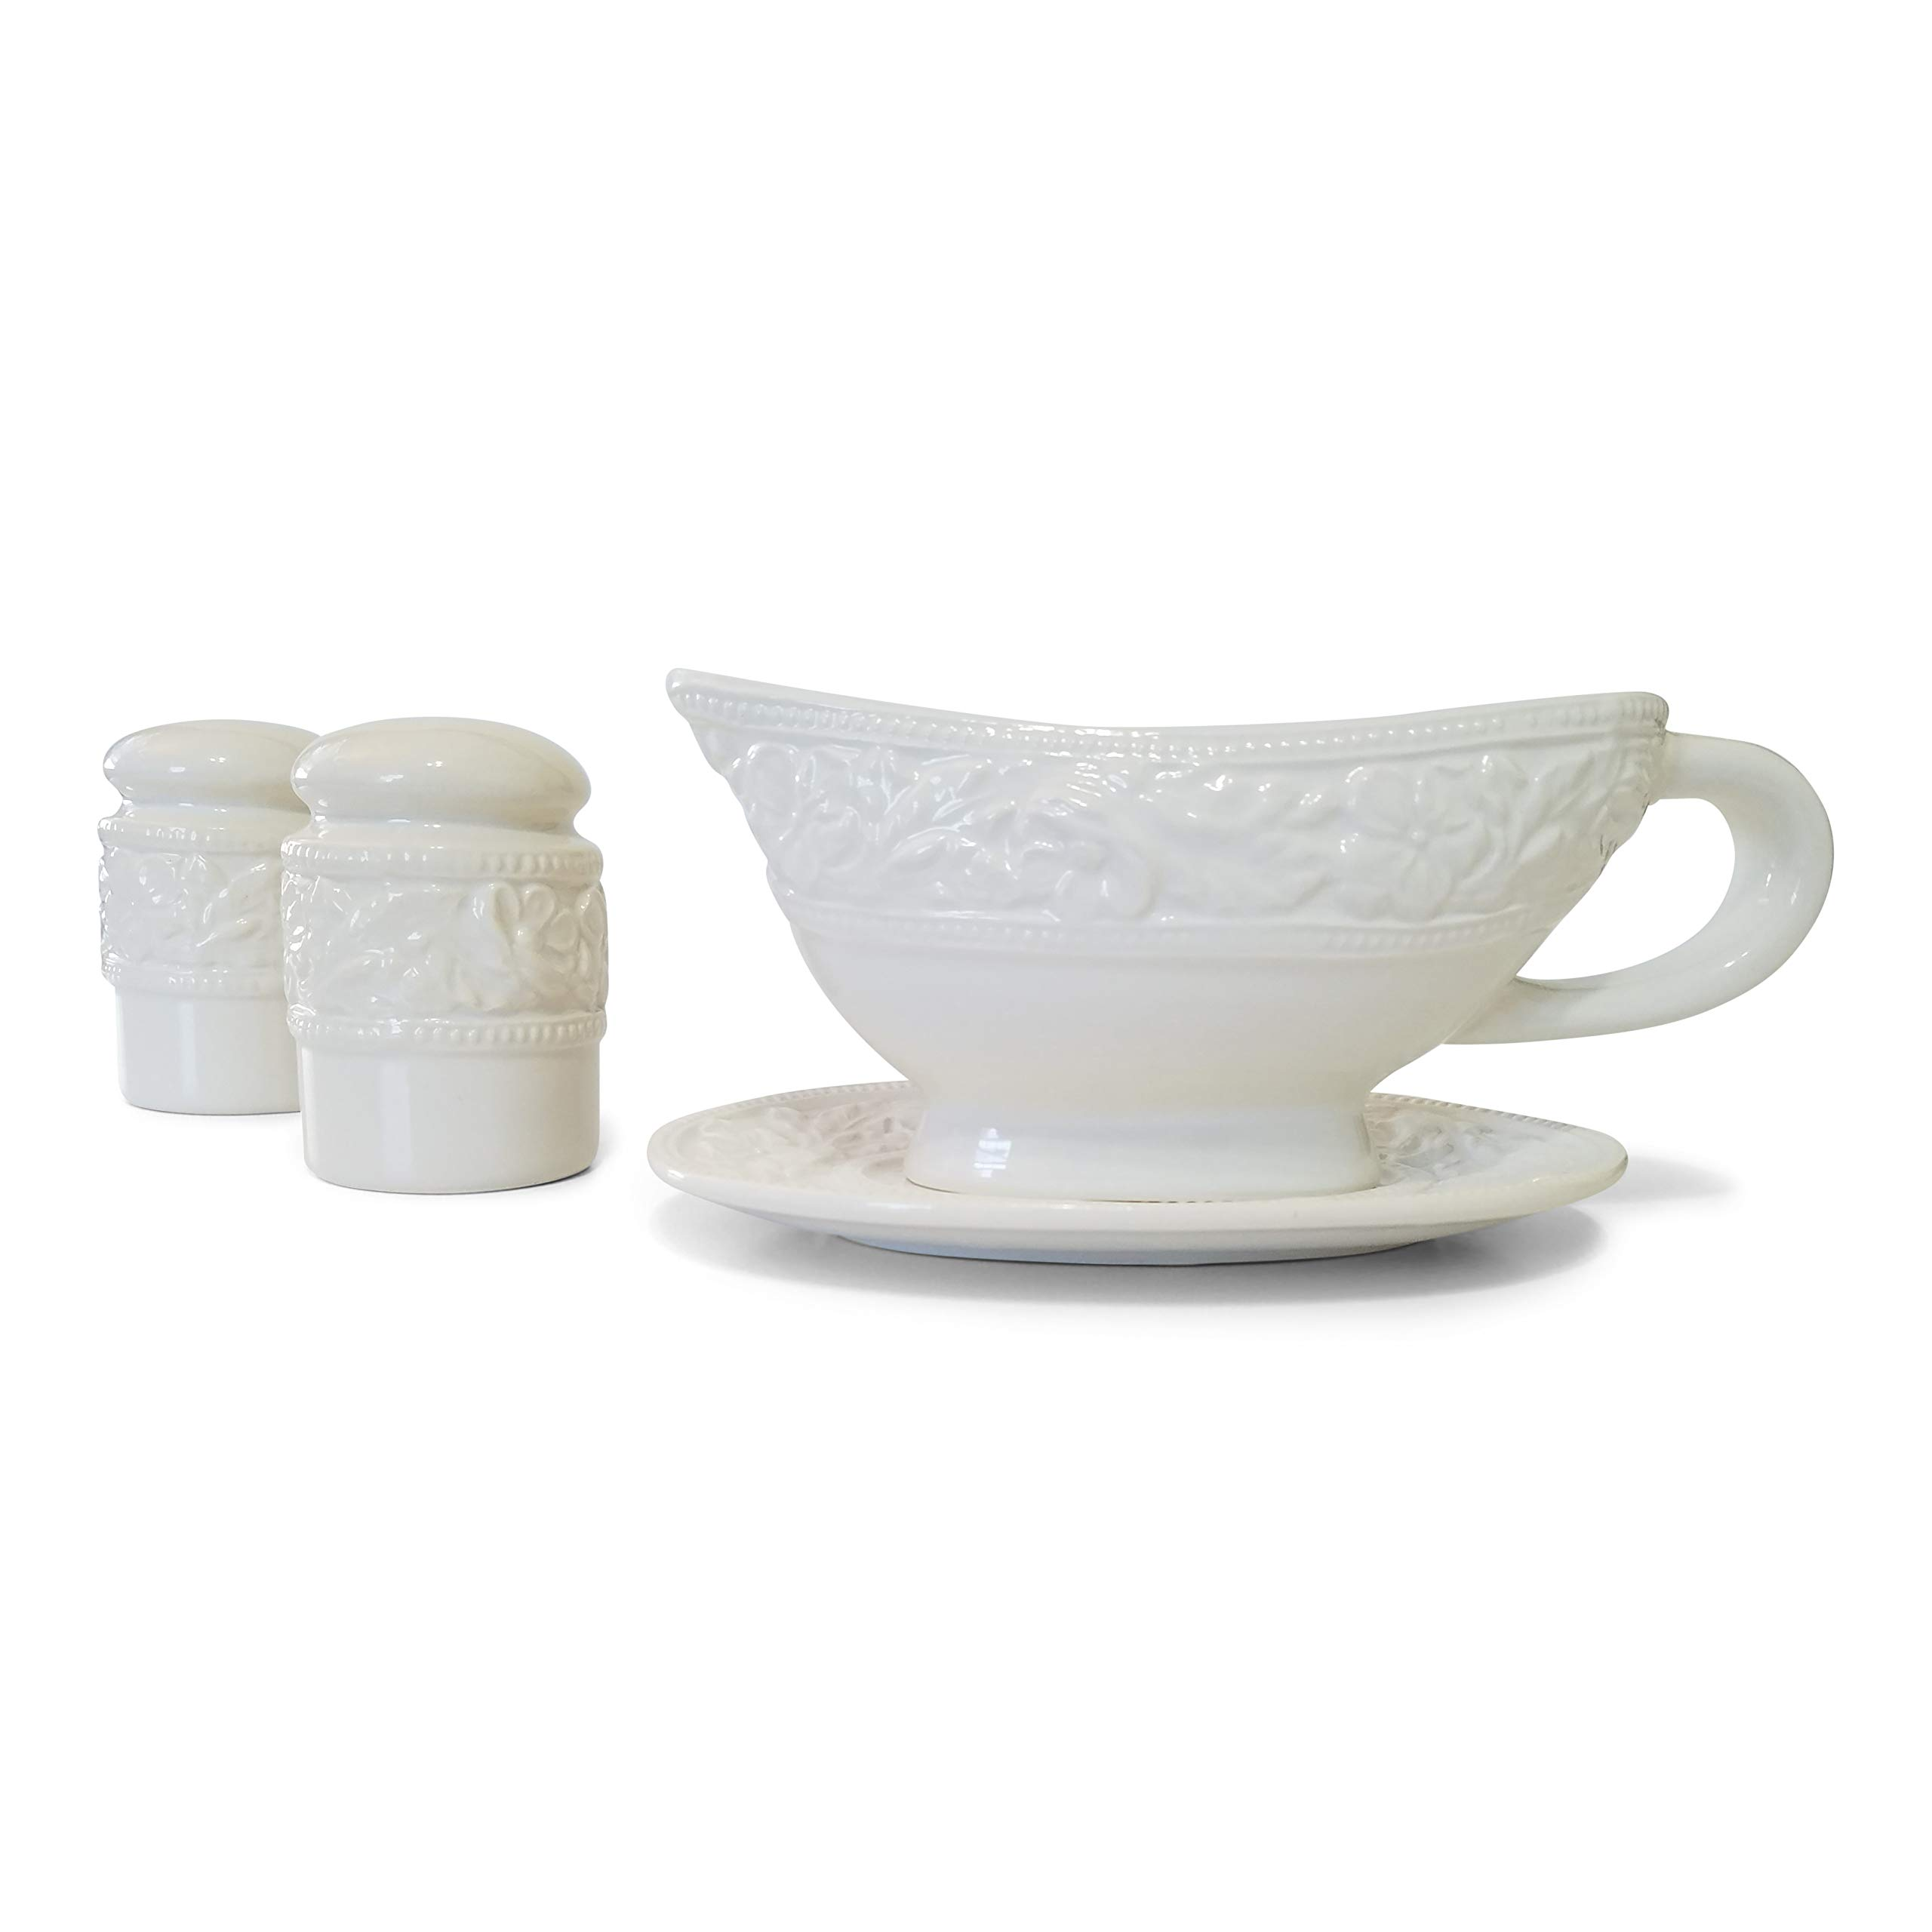 Gravy Boat Salt and Pepper Shaker Set - 1 Set Gravy Serving Dishes | 1 Set of Salt and Pepper Shakers